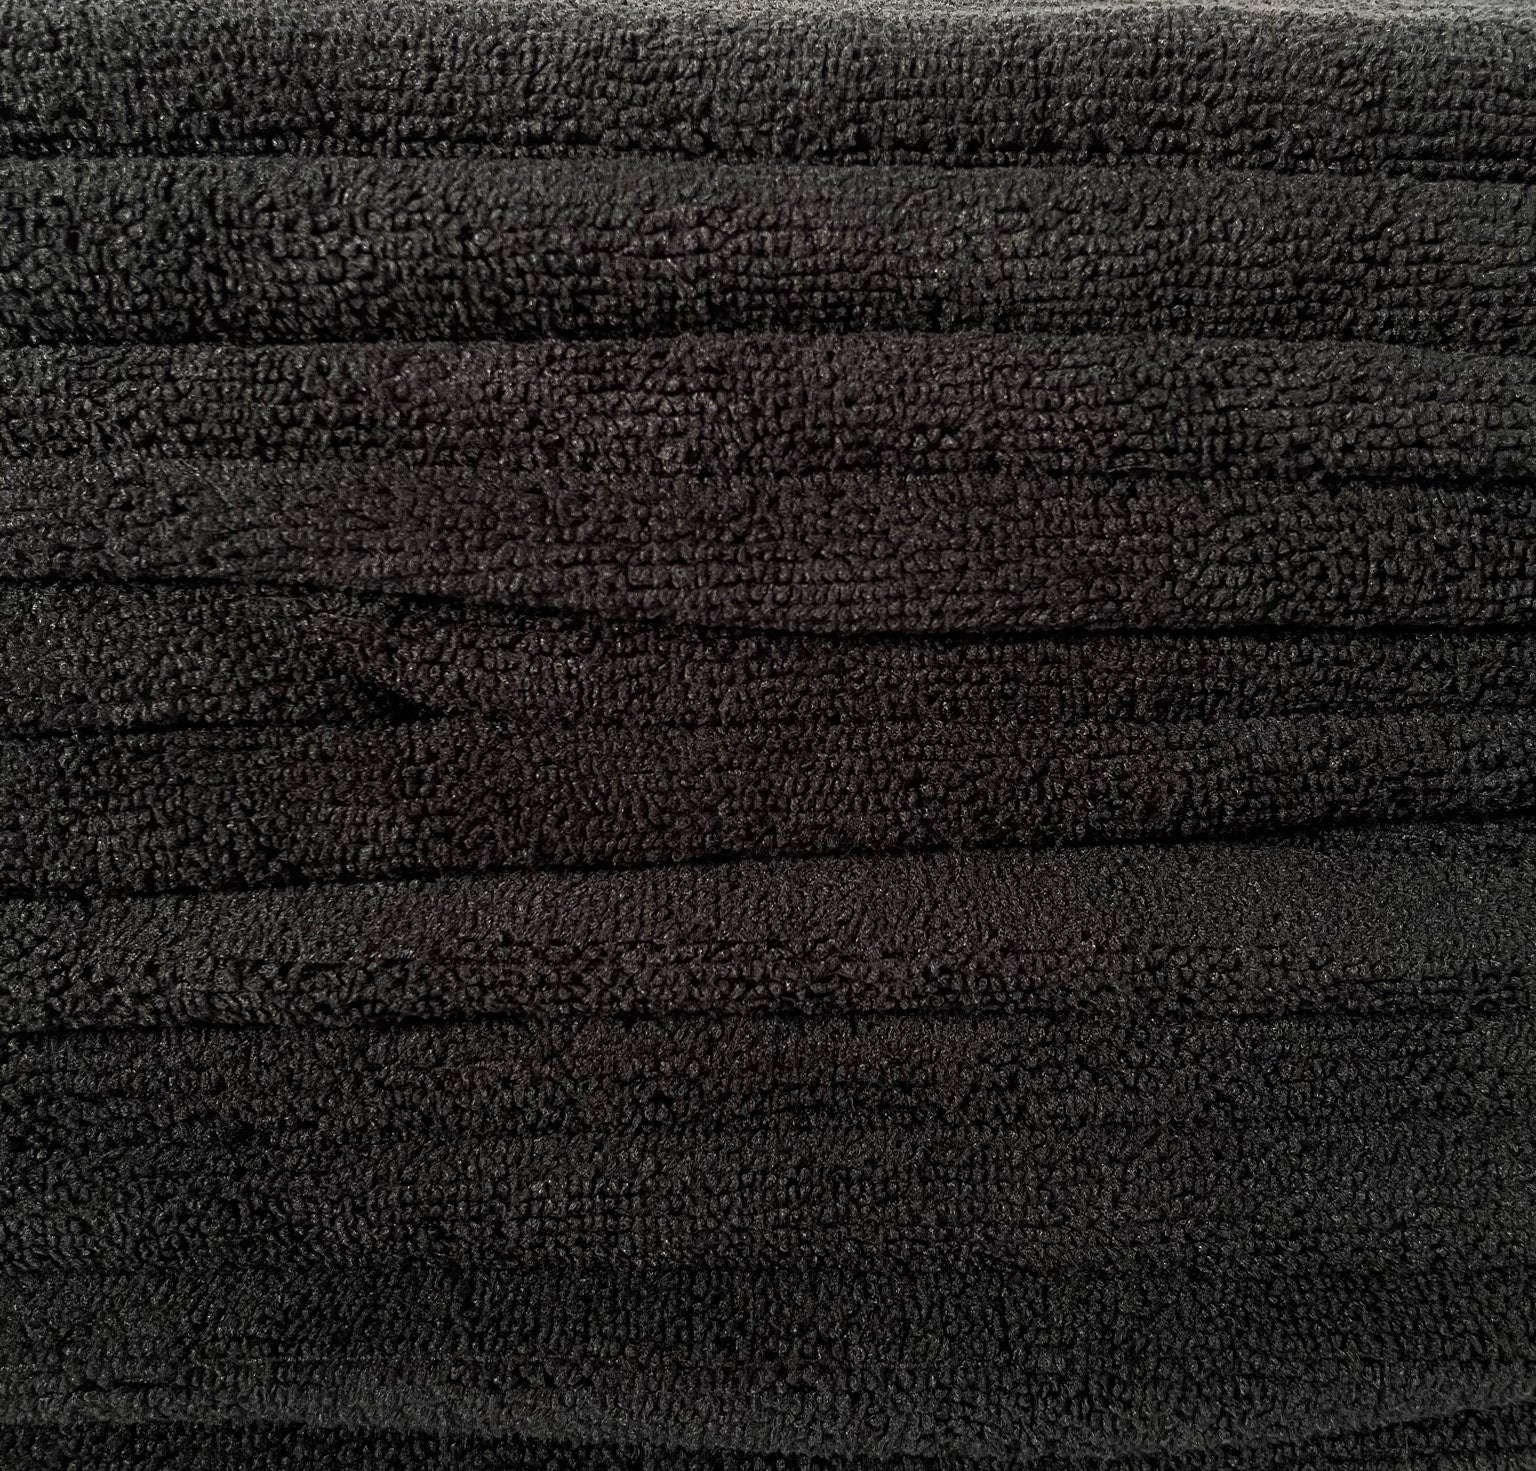 Partex micro4™ Edgeless Terry 70/30 Polyester/Polyamide Towels